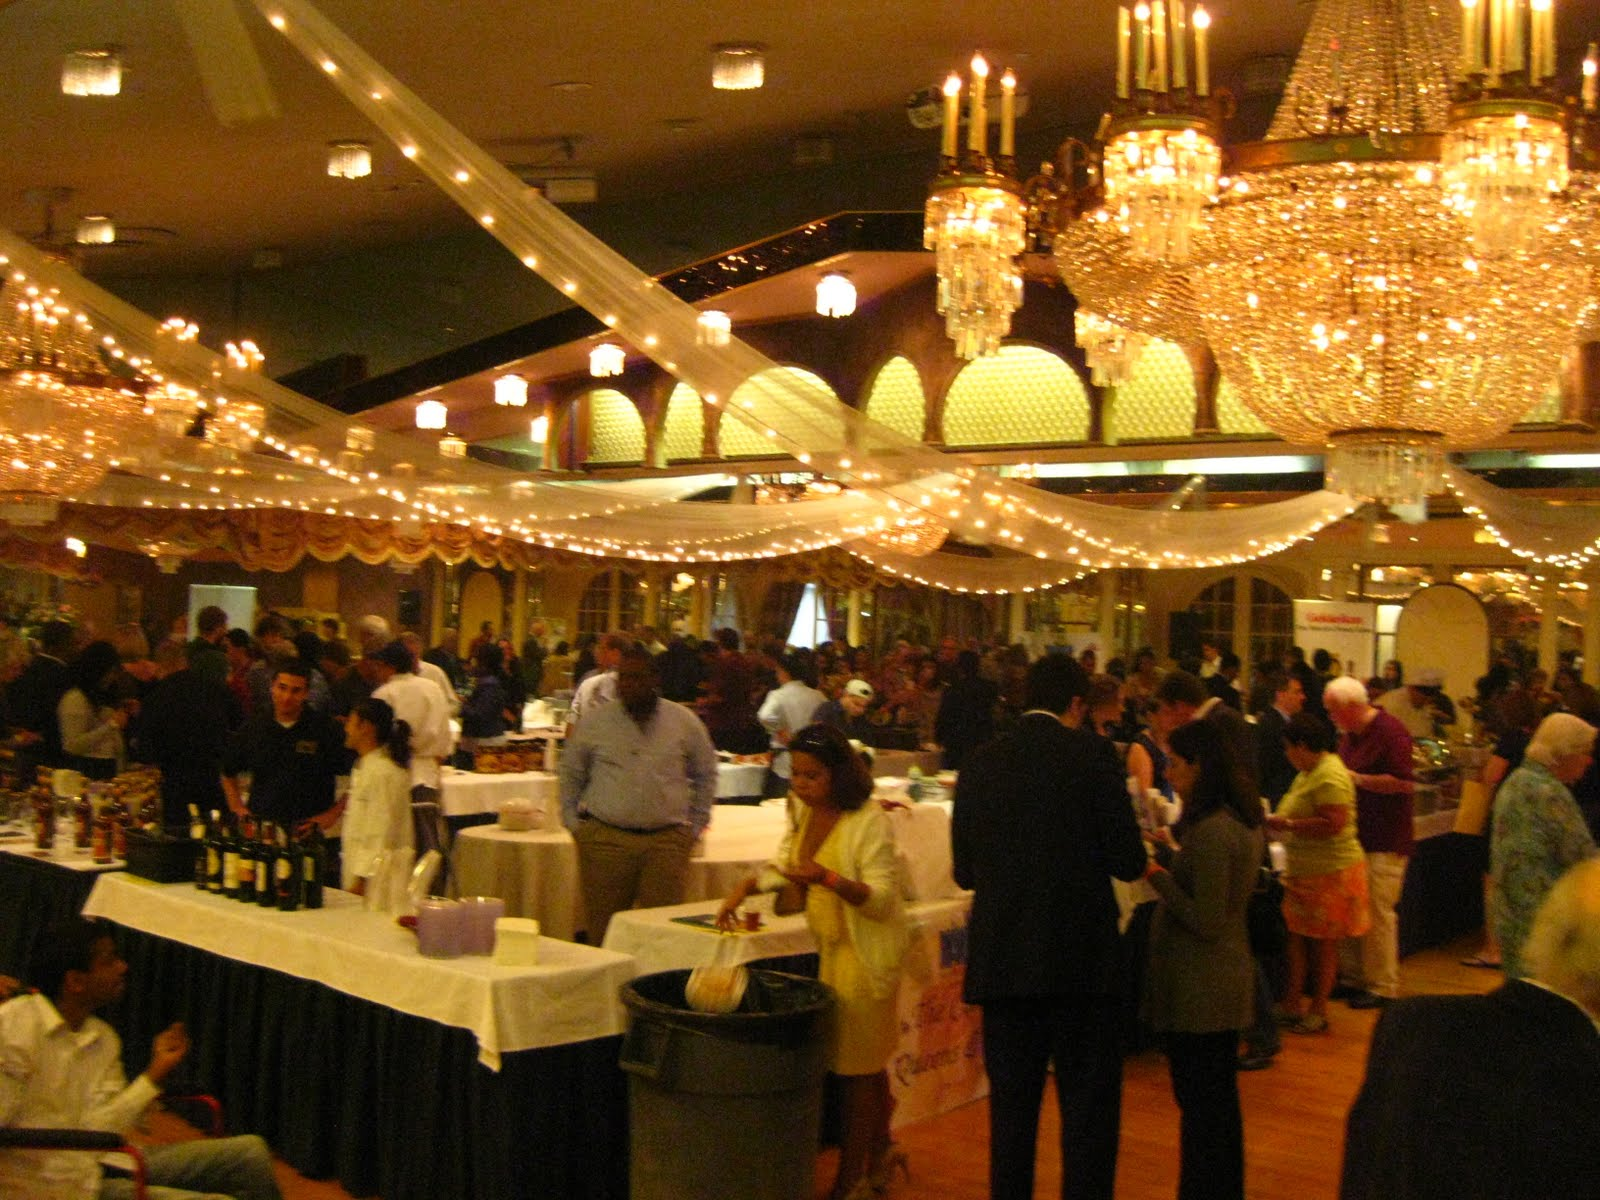 Banquet Halls In Buffalo New York : Banquet hall buffalo new york joseph s